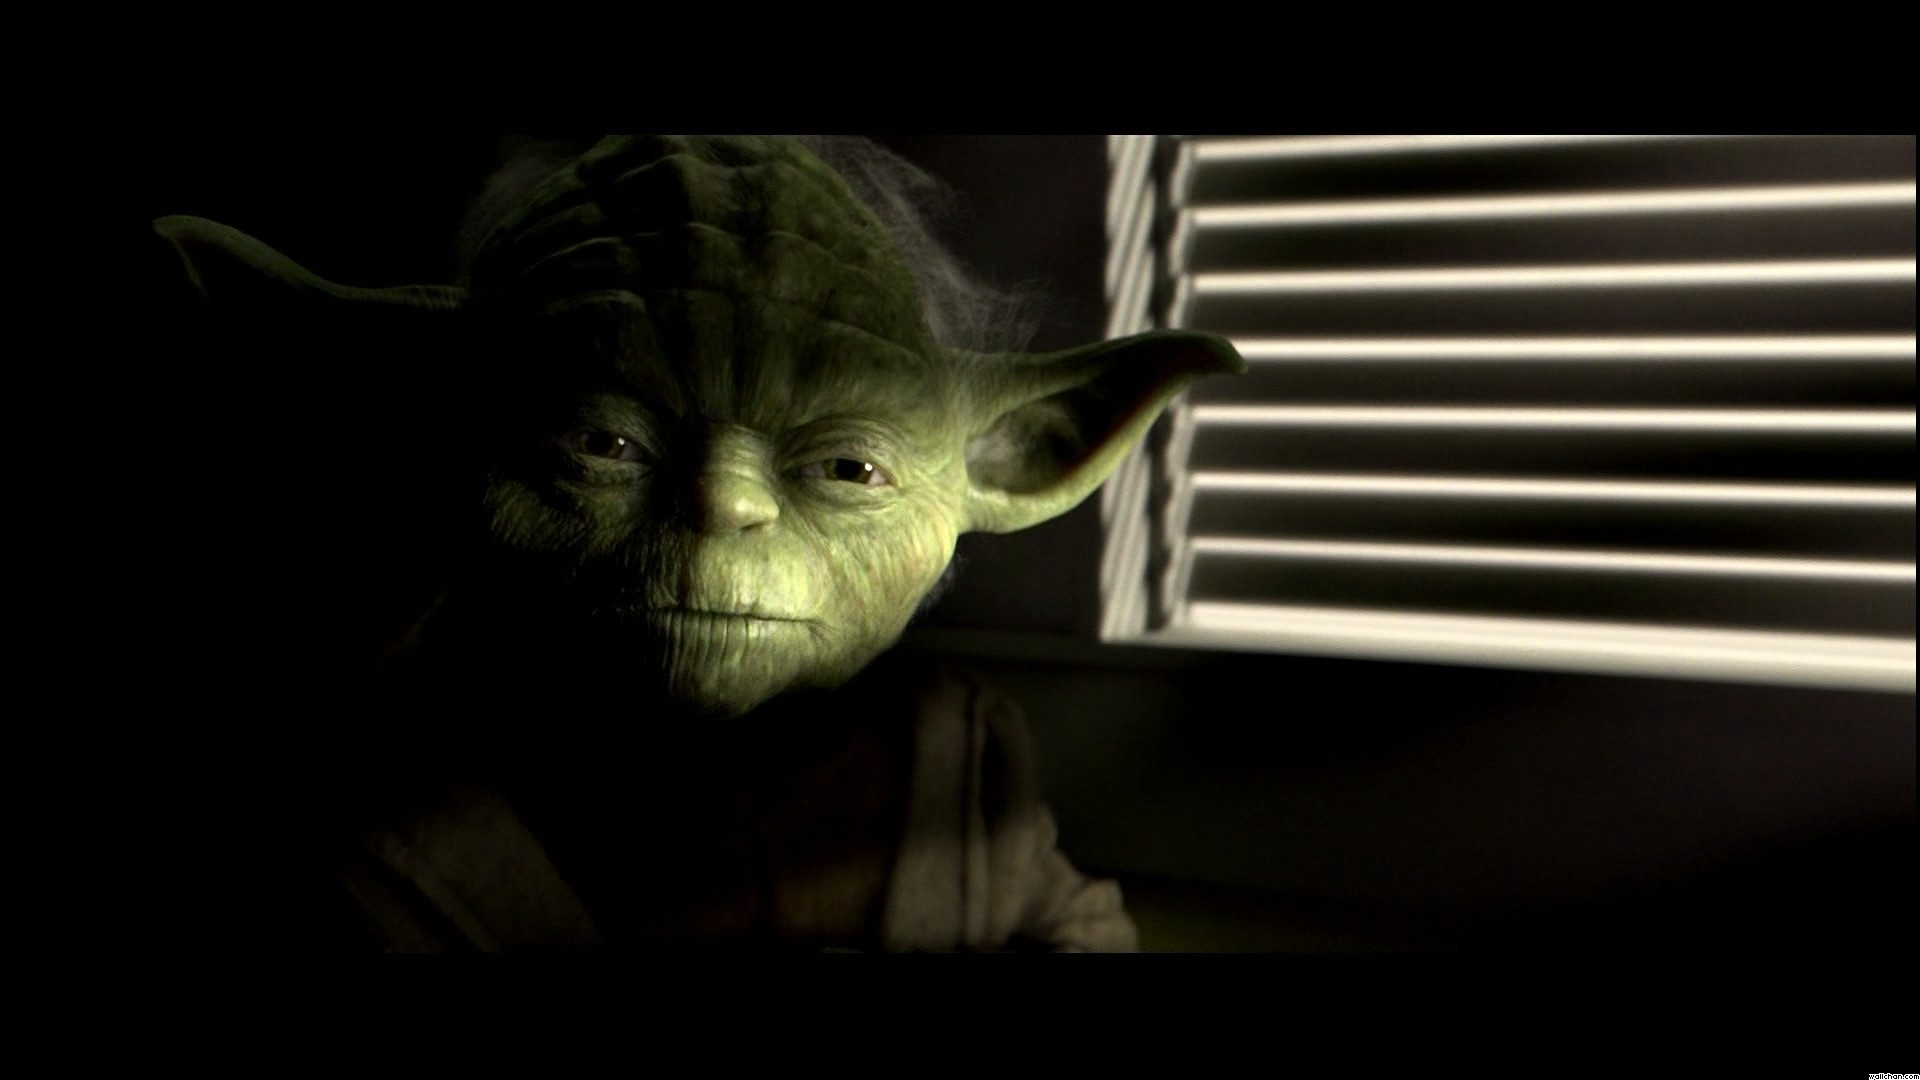 Star Wars Yoda Wallpaper Train Yourself To Let Go Everything Your Fear Of To 2994125 Hd Wallpaper Backgrounds Download